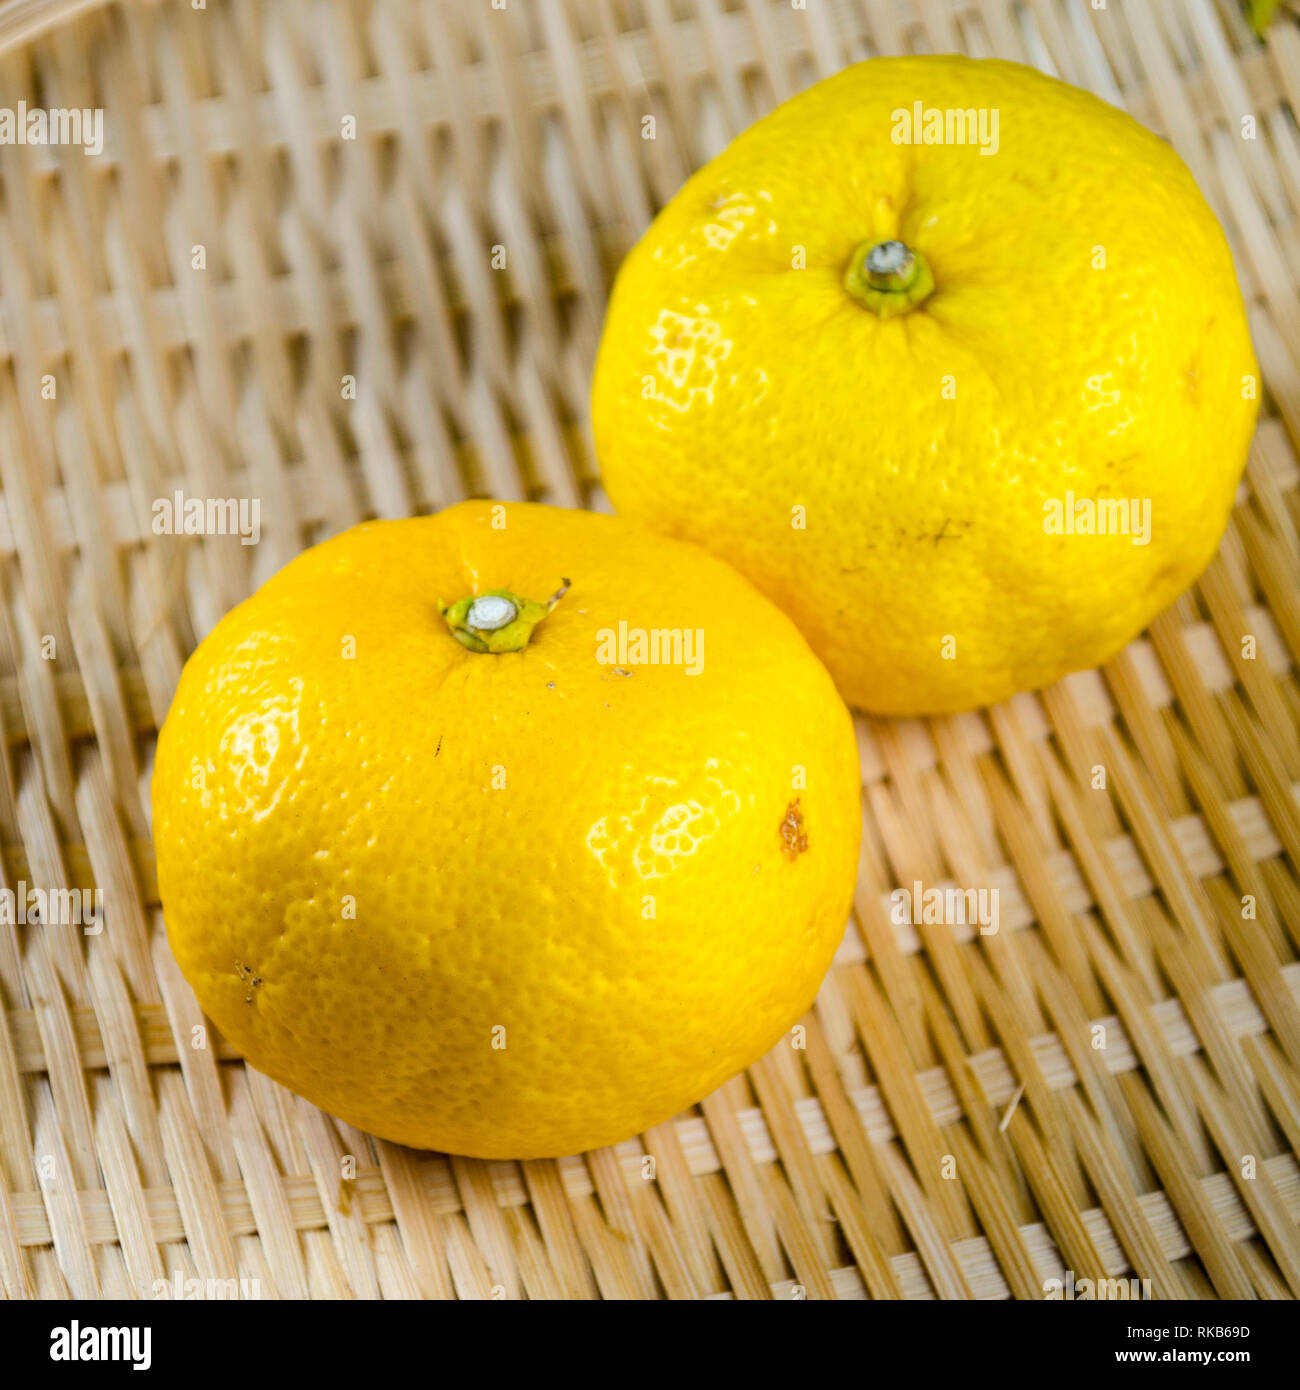 Two yuzu fruits (a sour and fragrant Japanese citrus variety) on a woven basket - Stock Image